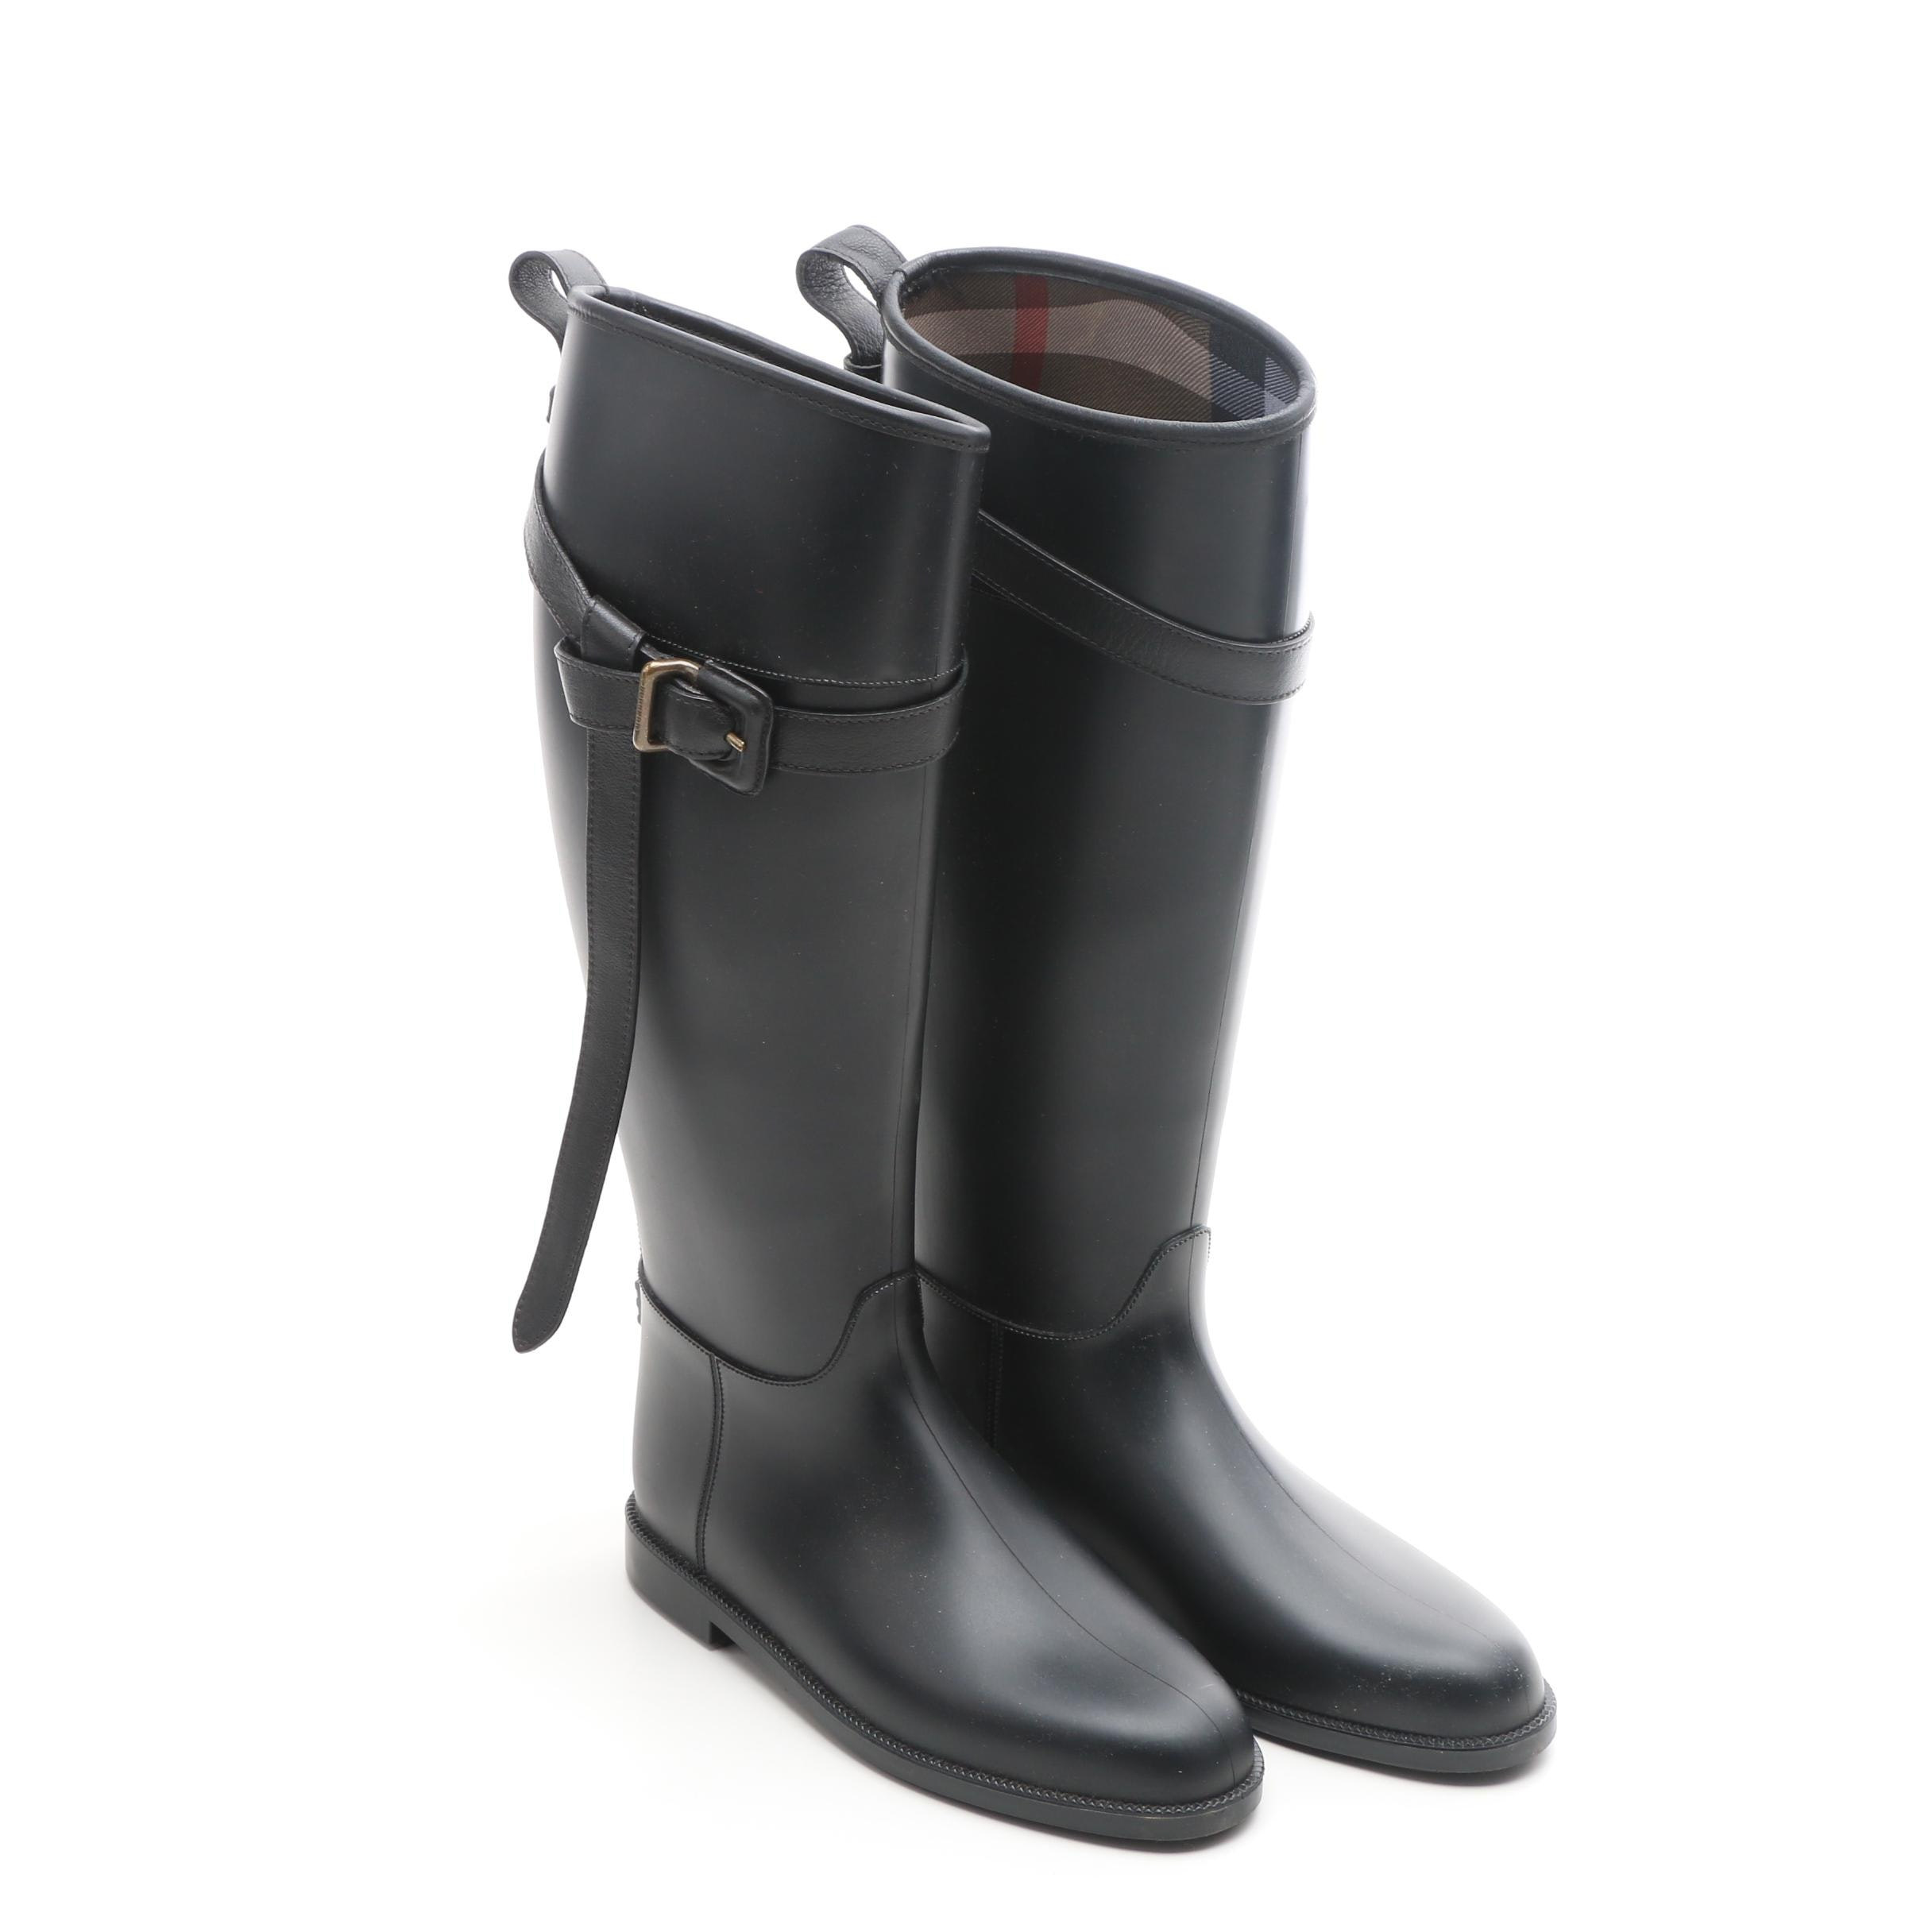 Burberry Rubber Rain Boots with Wrapped Strap and Buckle, Made in Italy